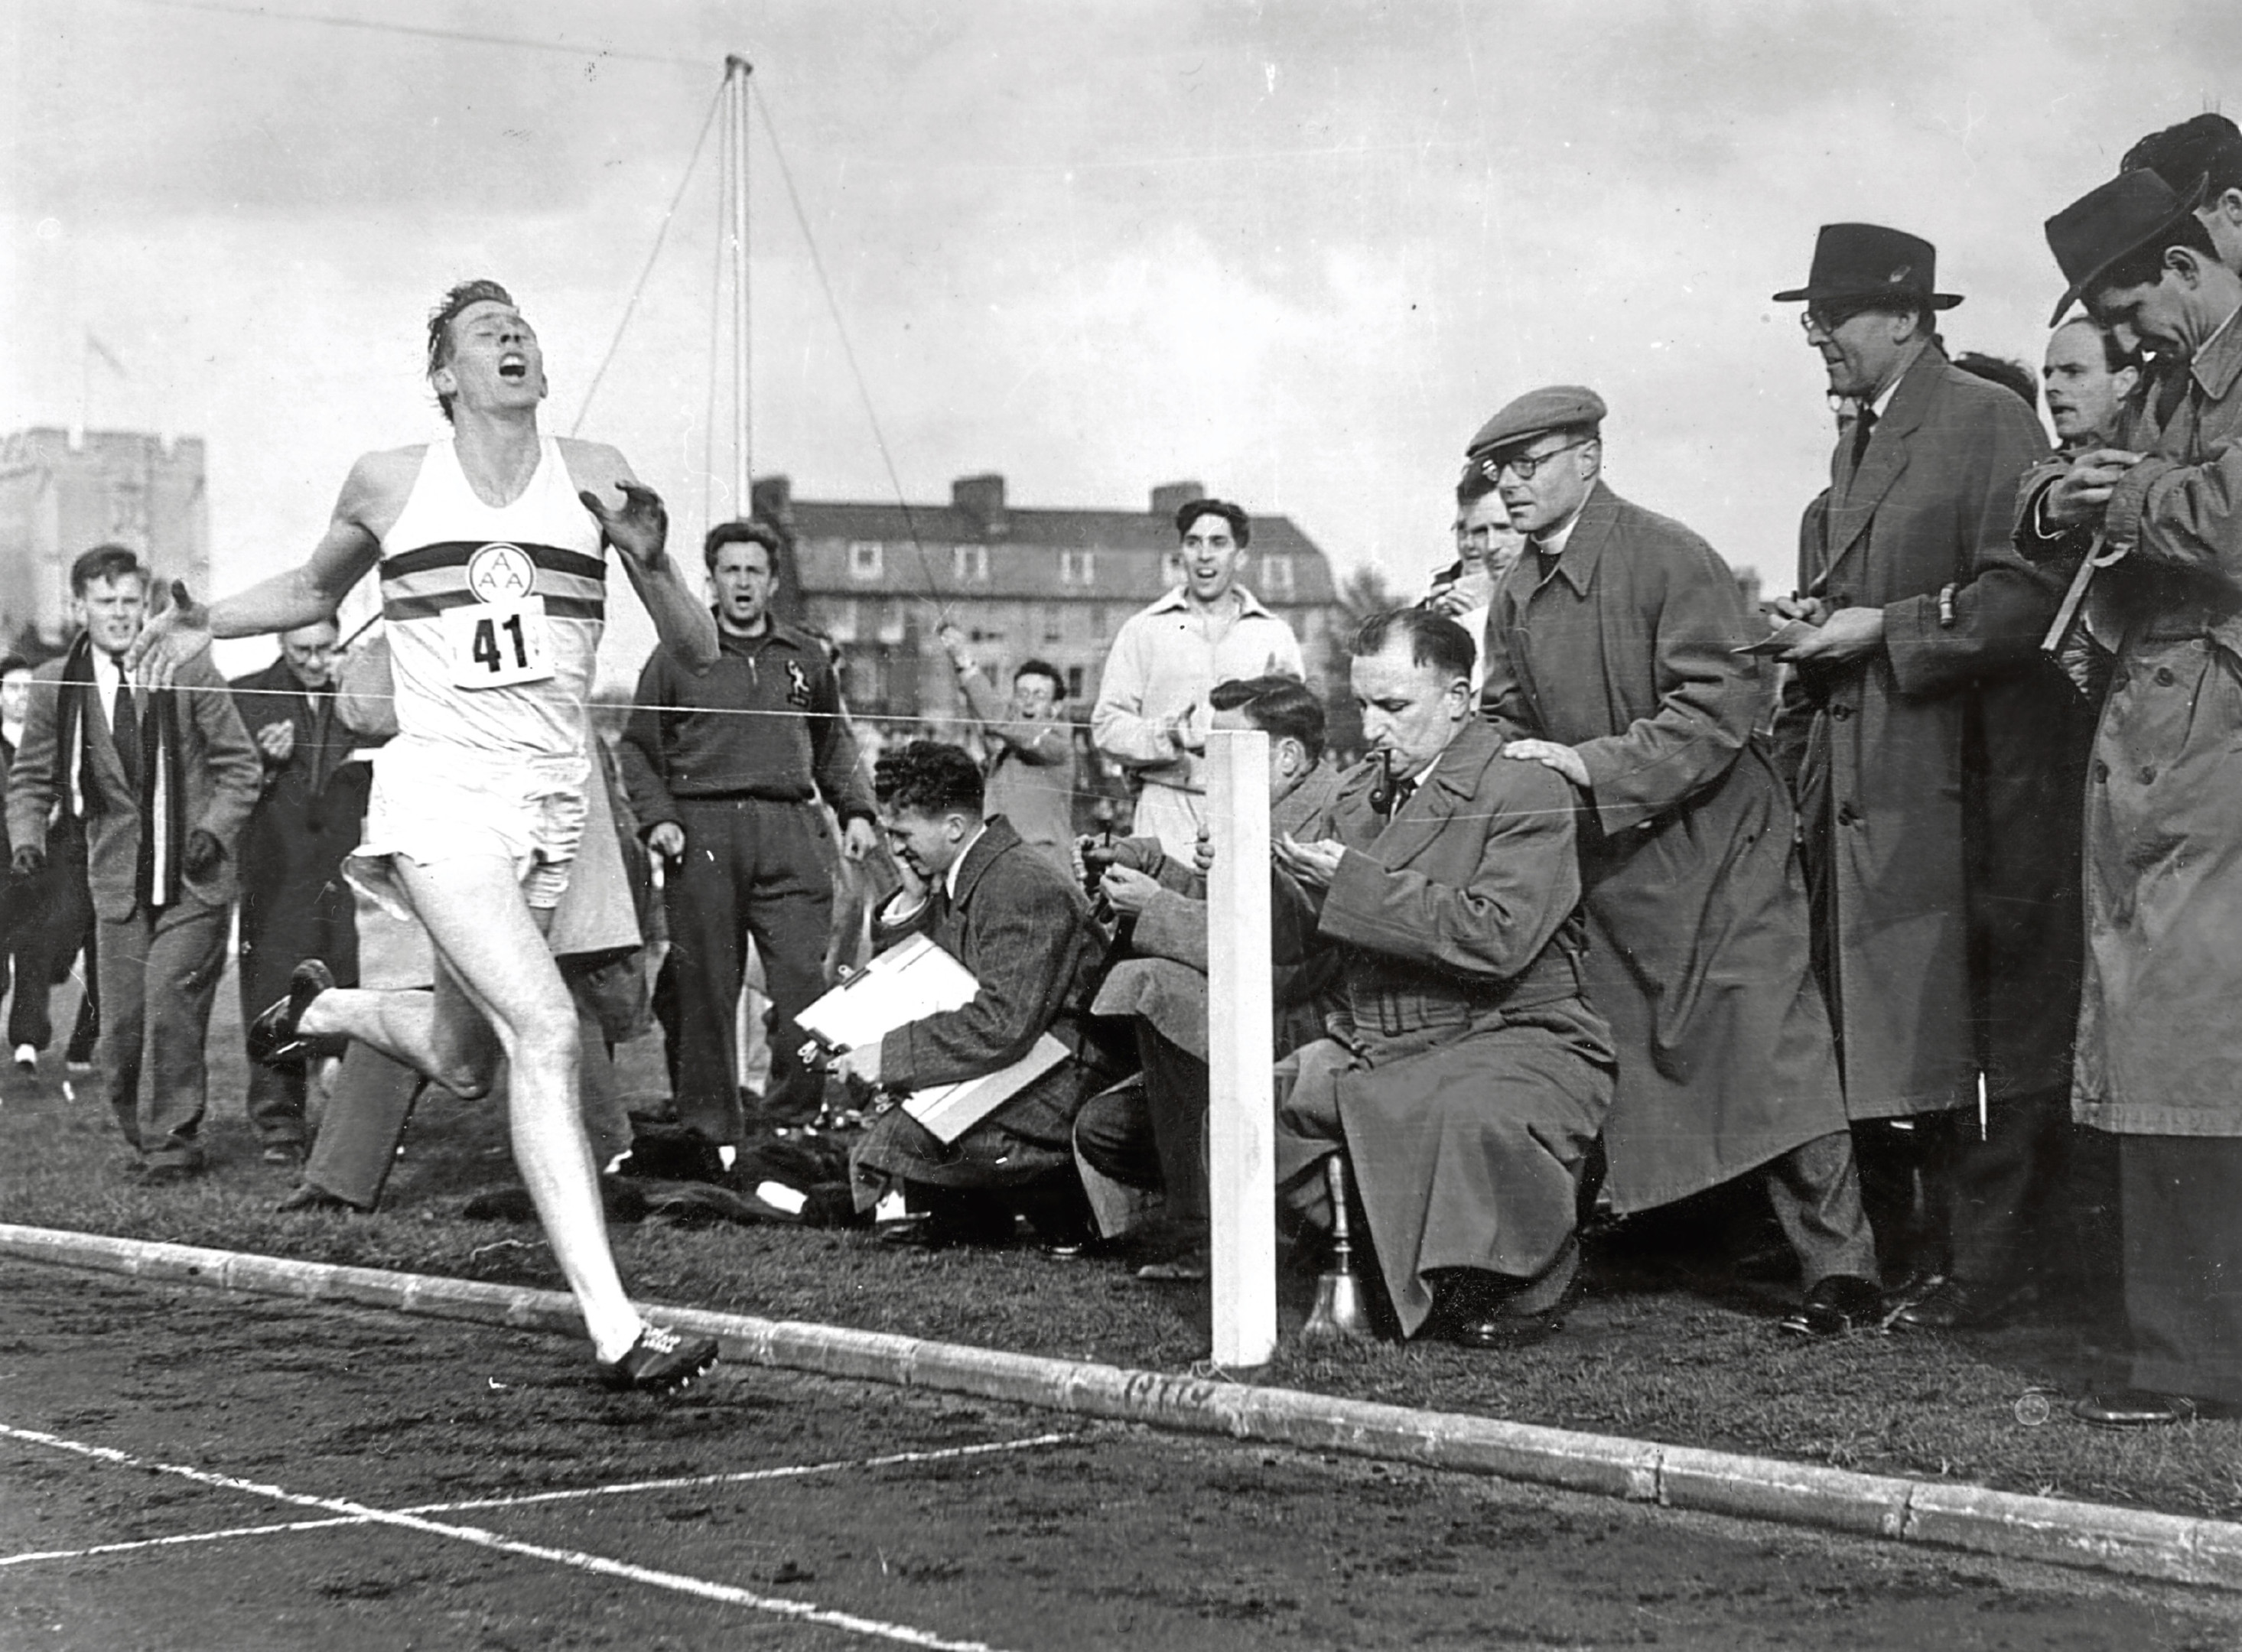 Roger Bannister about to cross the tape at the end of his record breaking mile run (Norman Potter/Central Press/Getty Images)